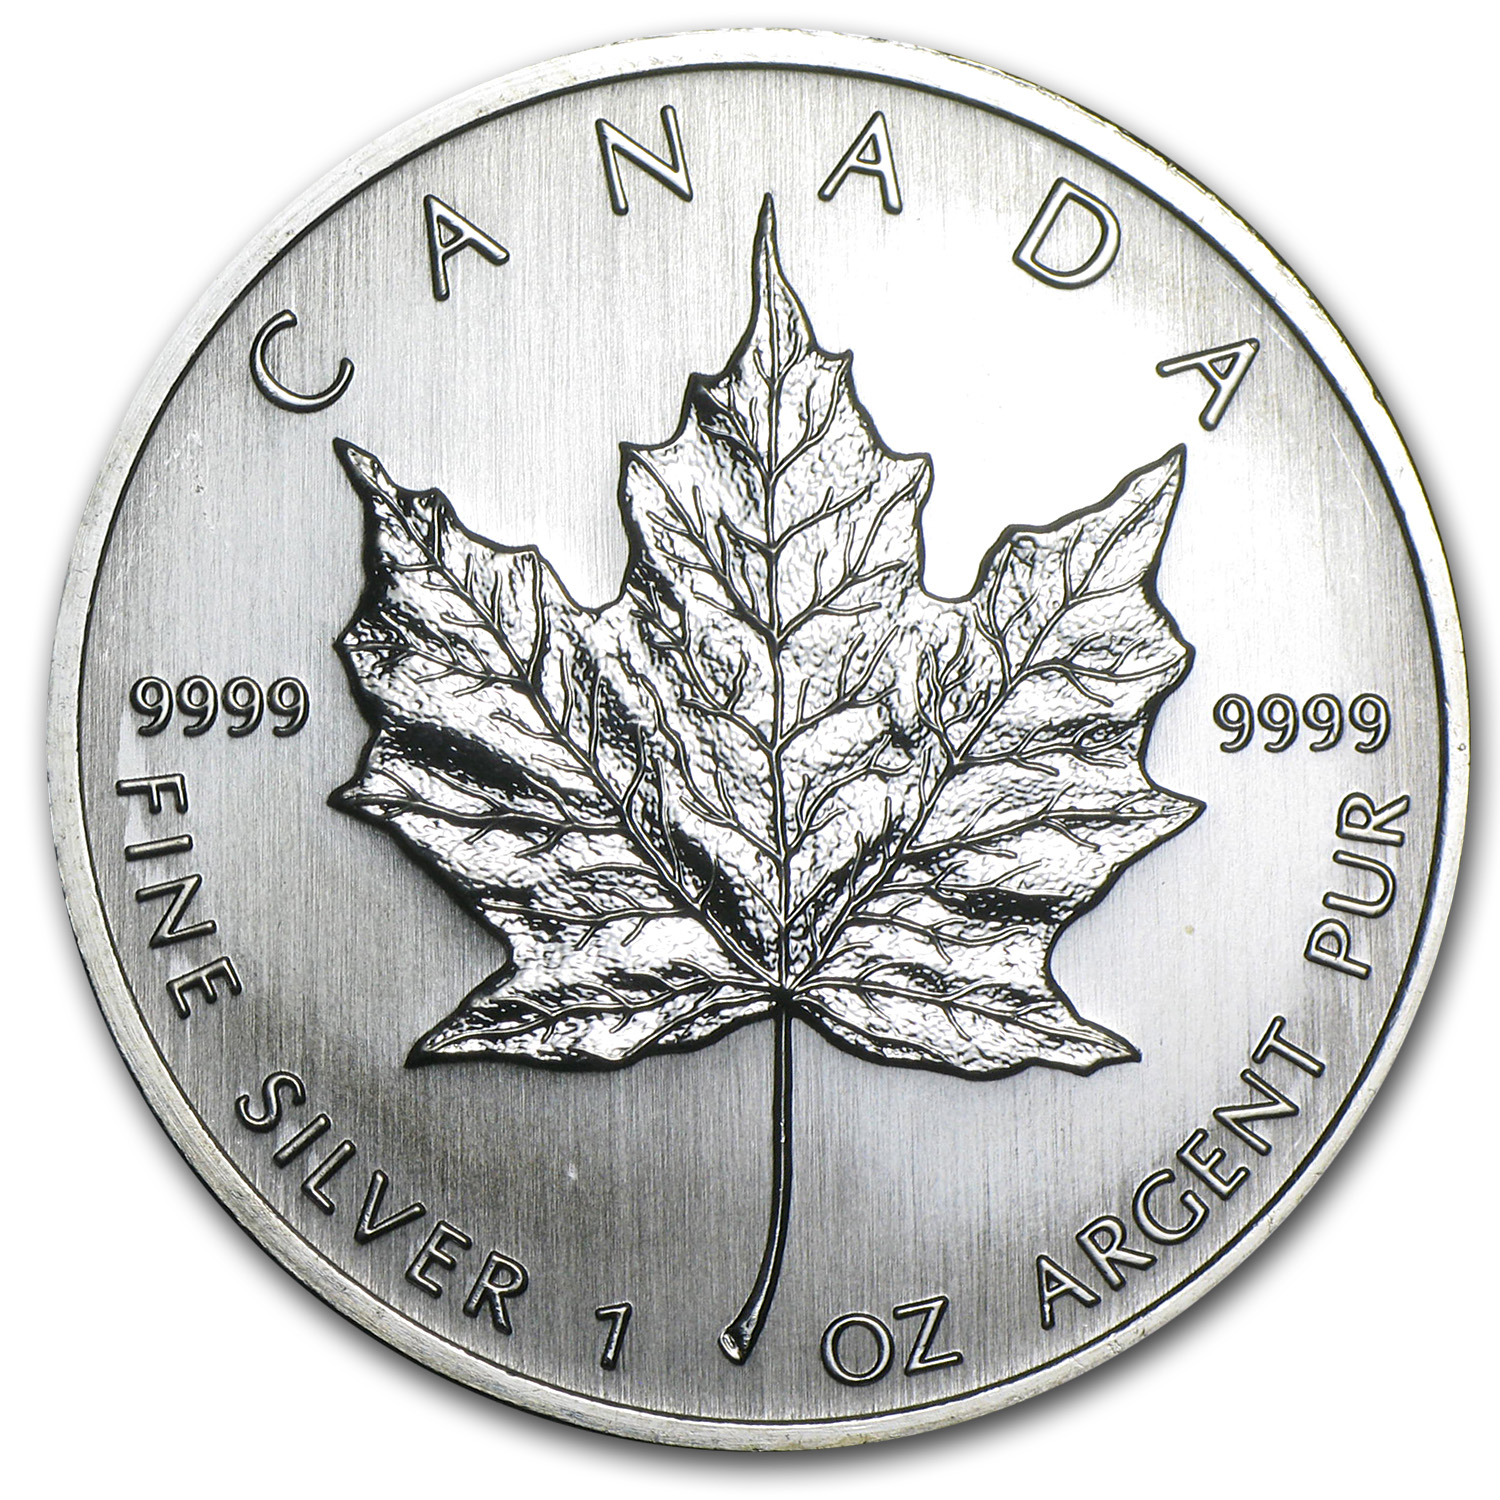 2008 Canada 1 oz Silver Maple Leaf BU